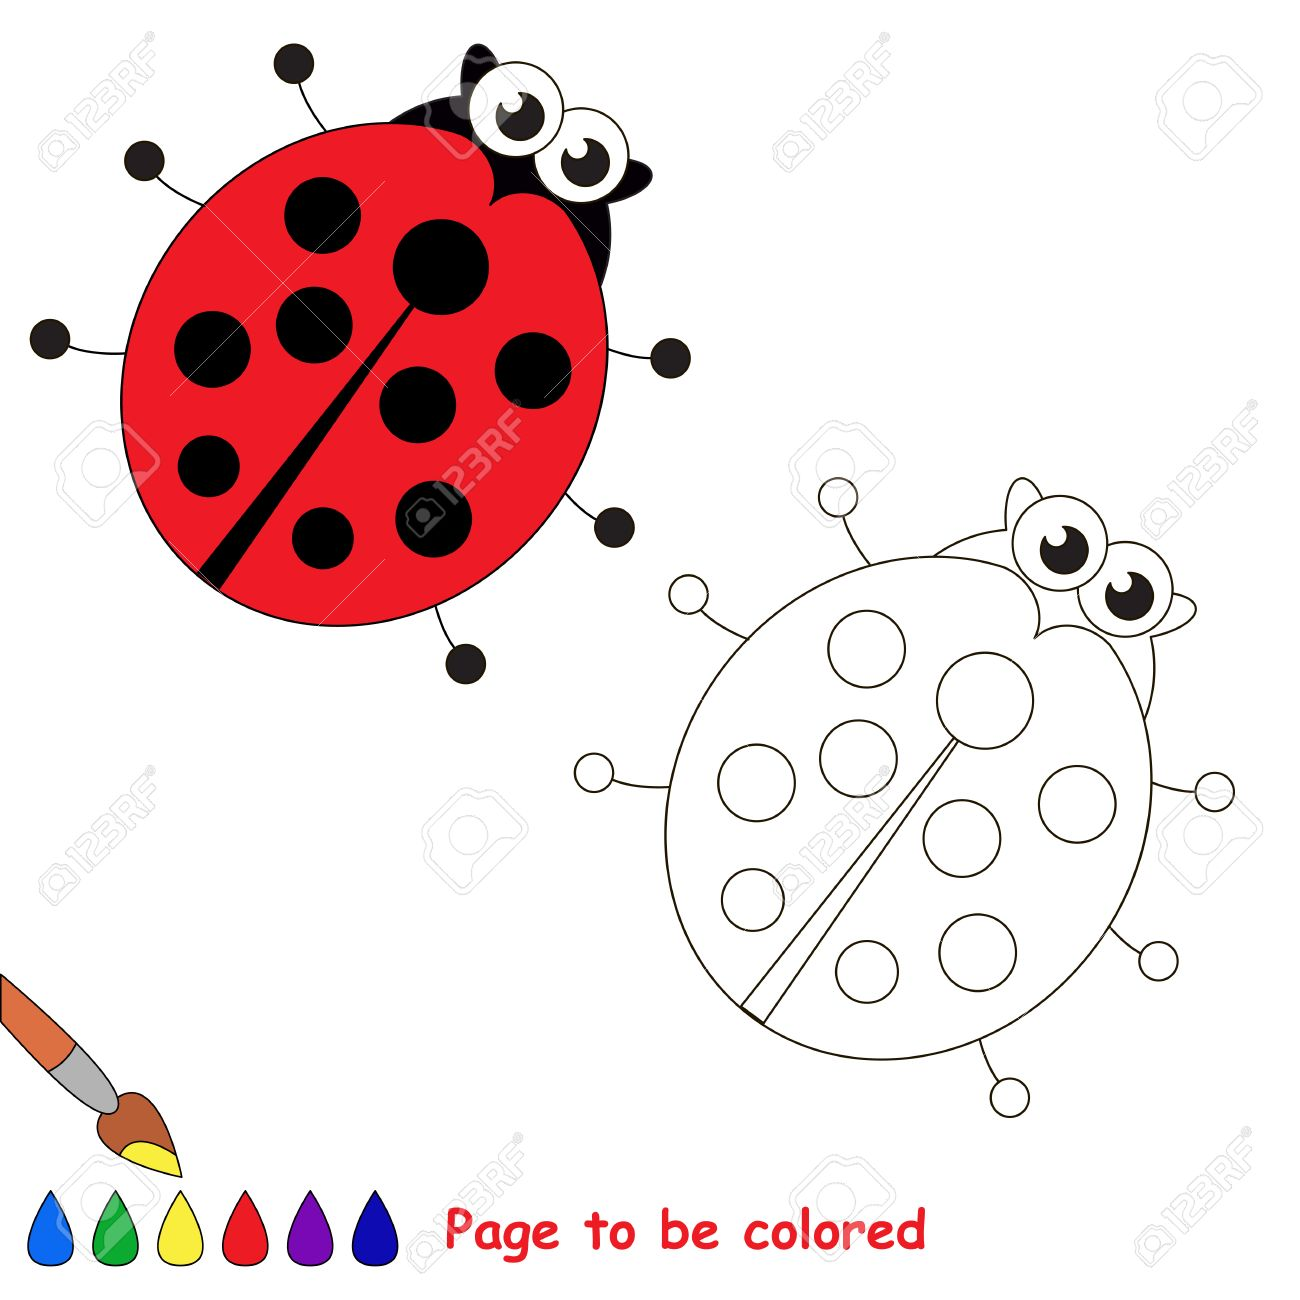 Coloring Book To Educate Kids Learn Colors Visual Educational